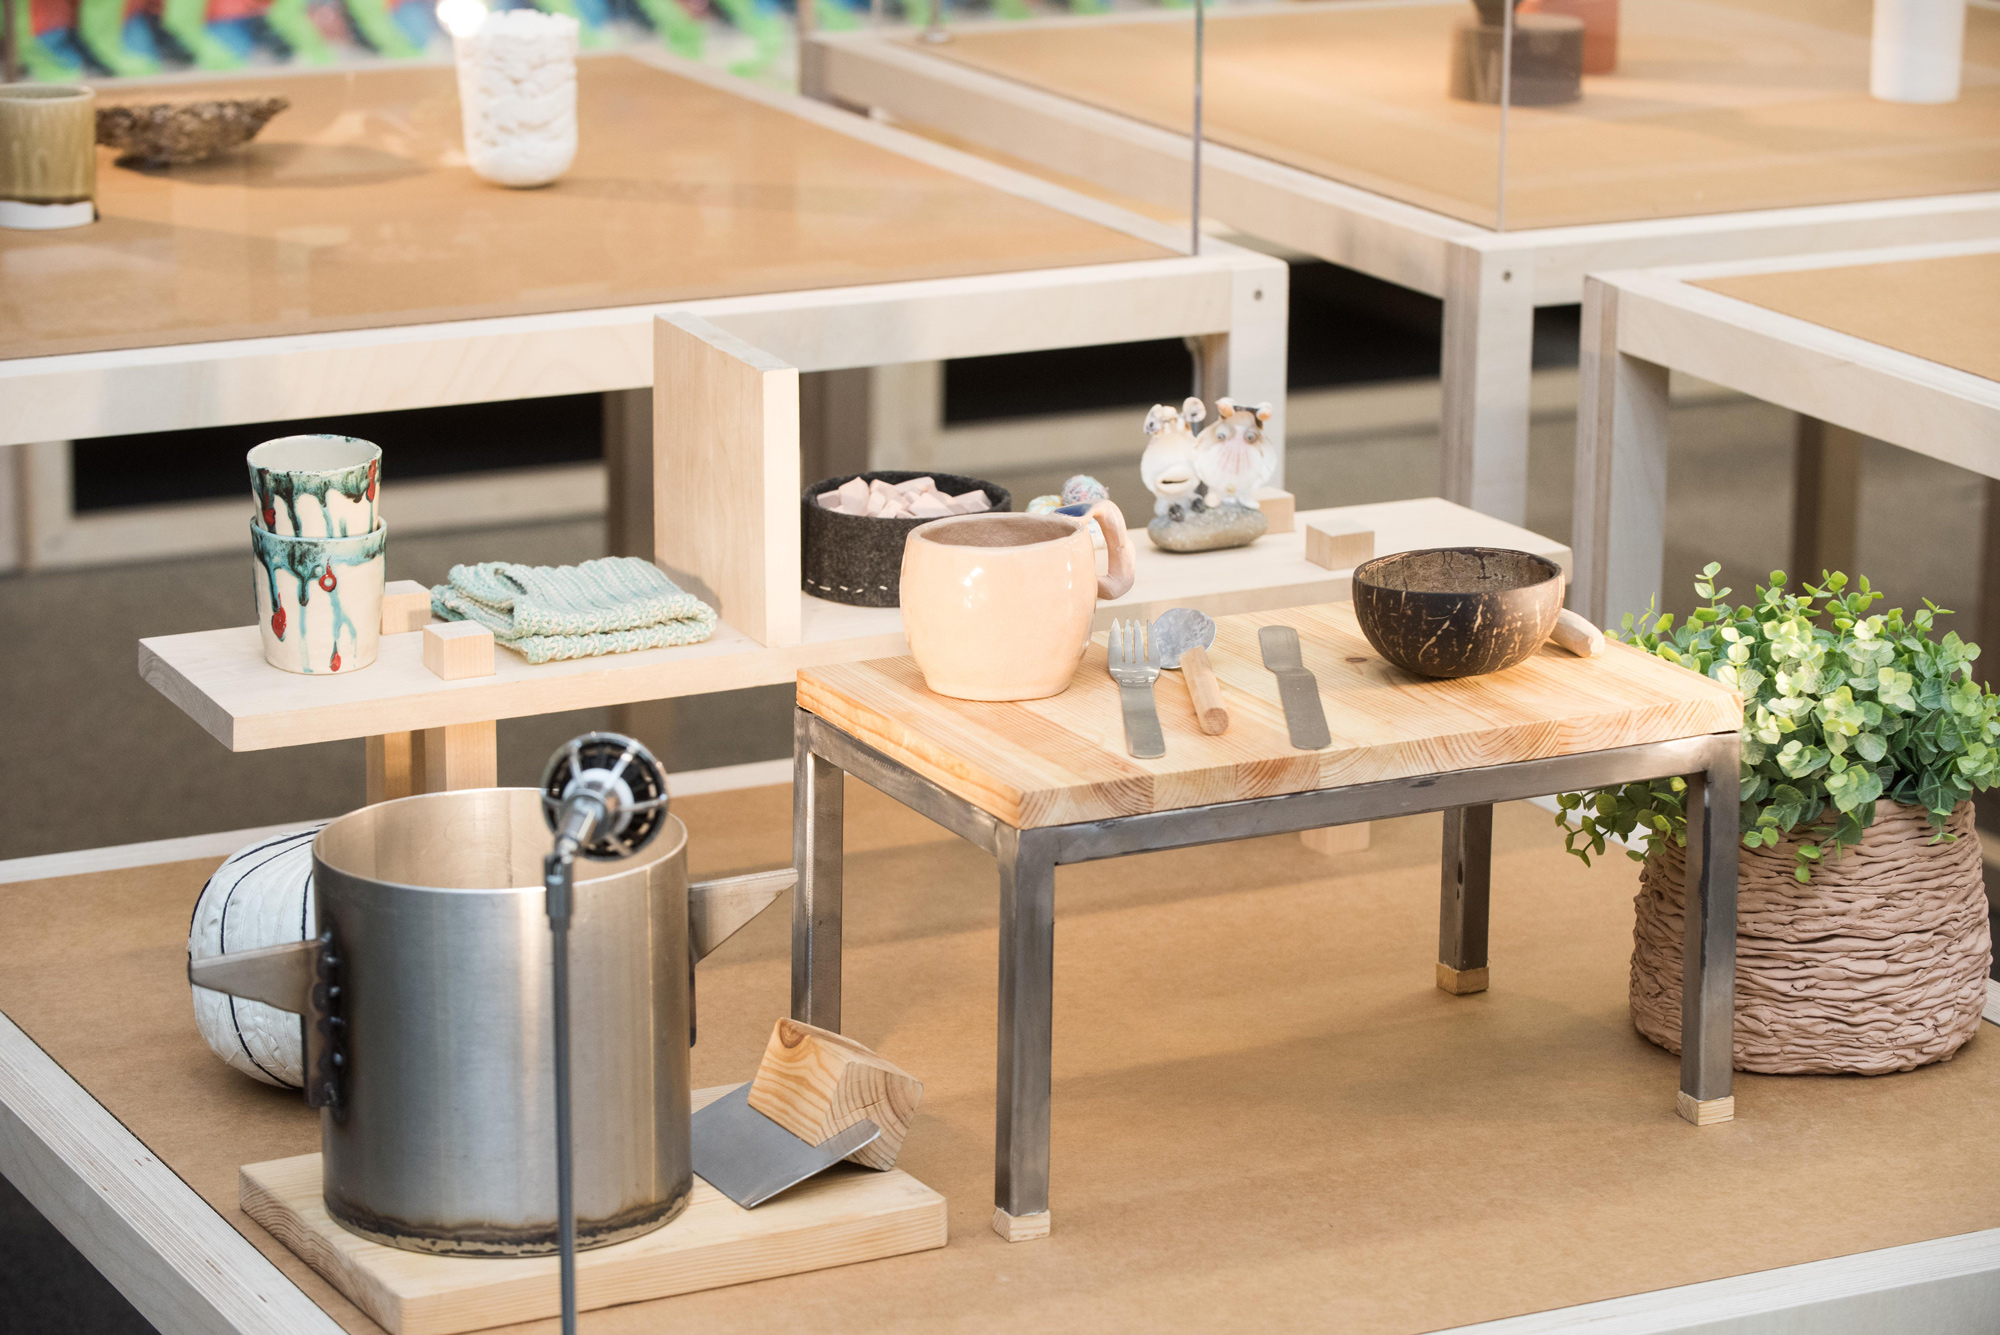 A display of various tableware in an exhibition space.